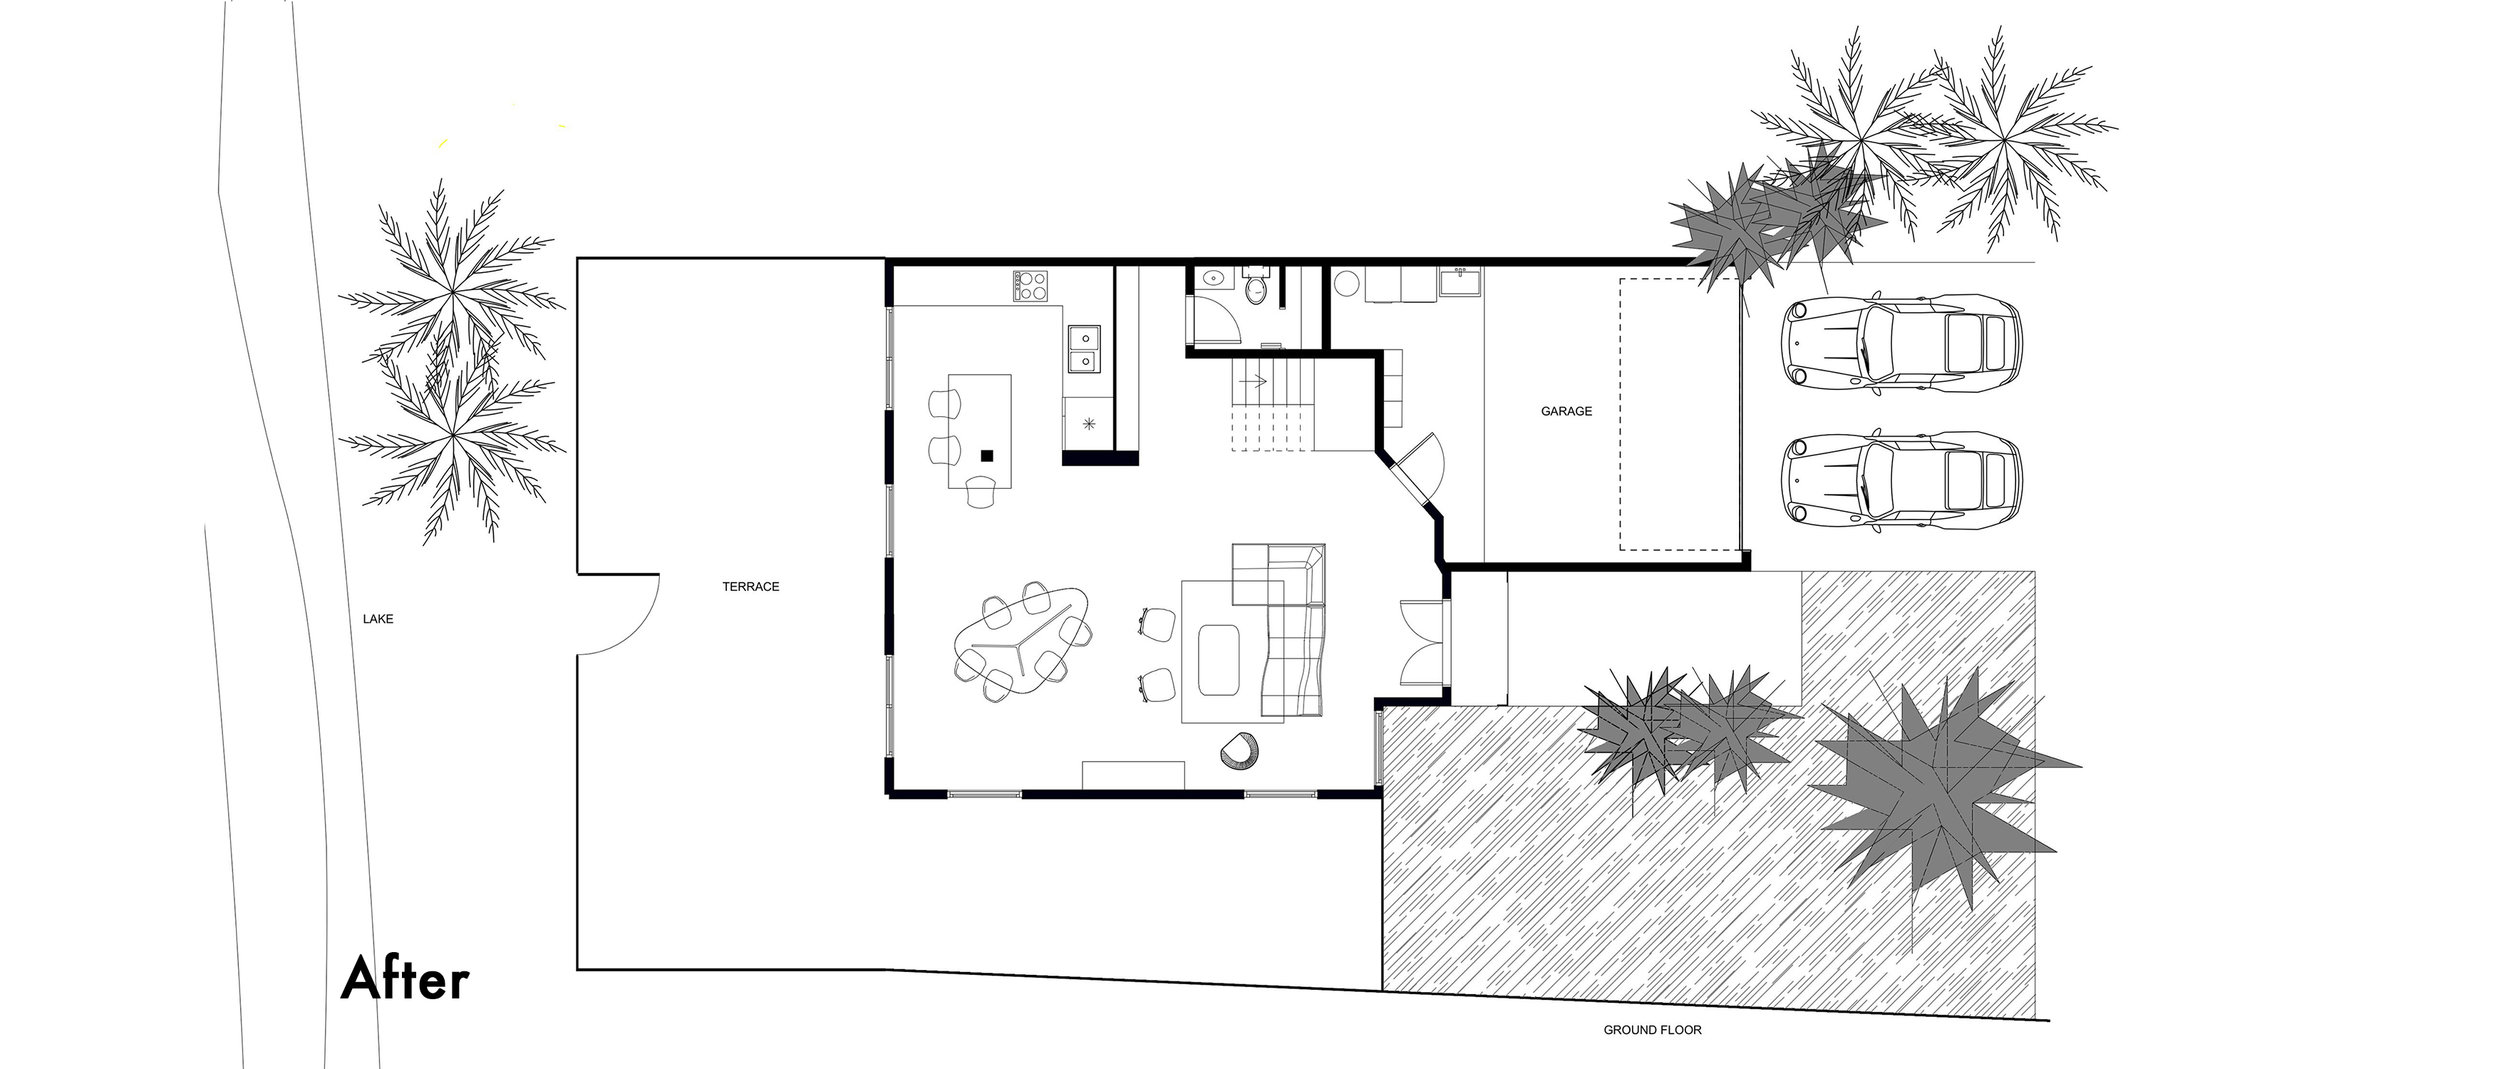 MiamiProject-FirstFloor-After-3000x1500.jpg